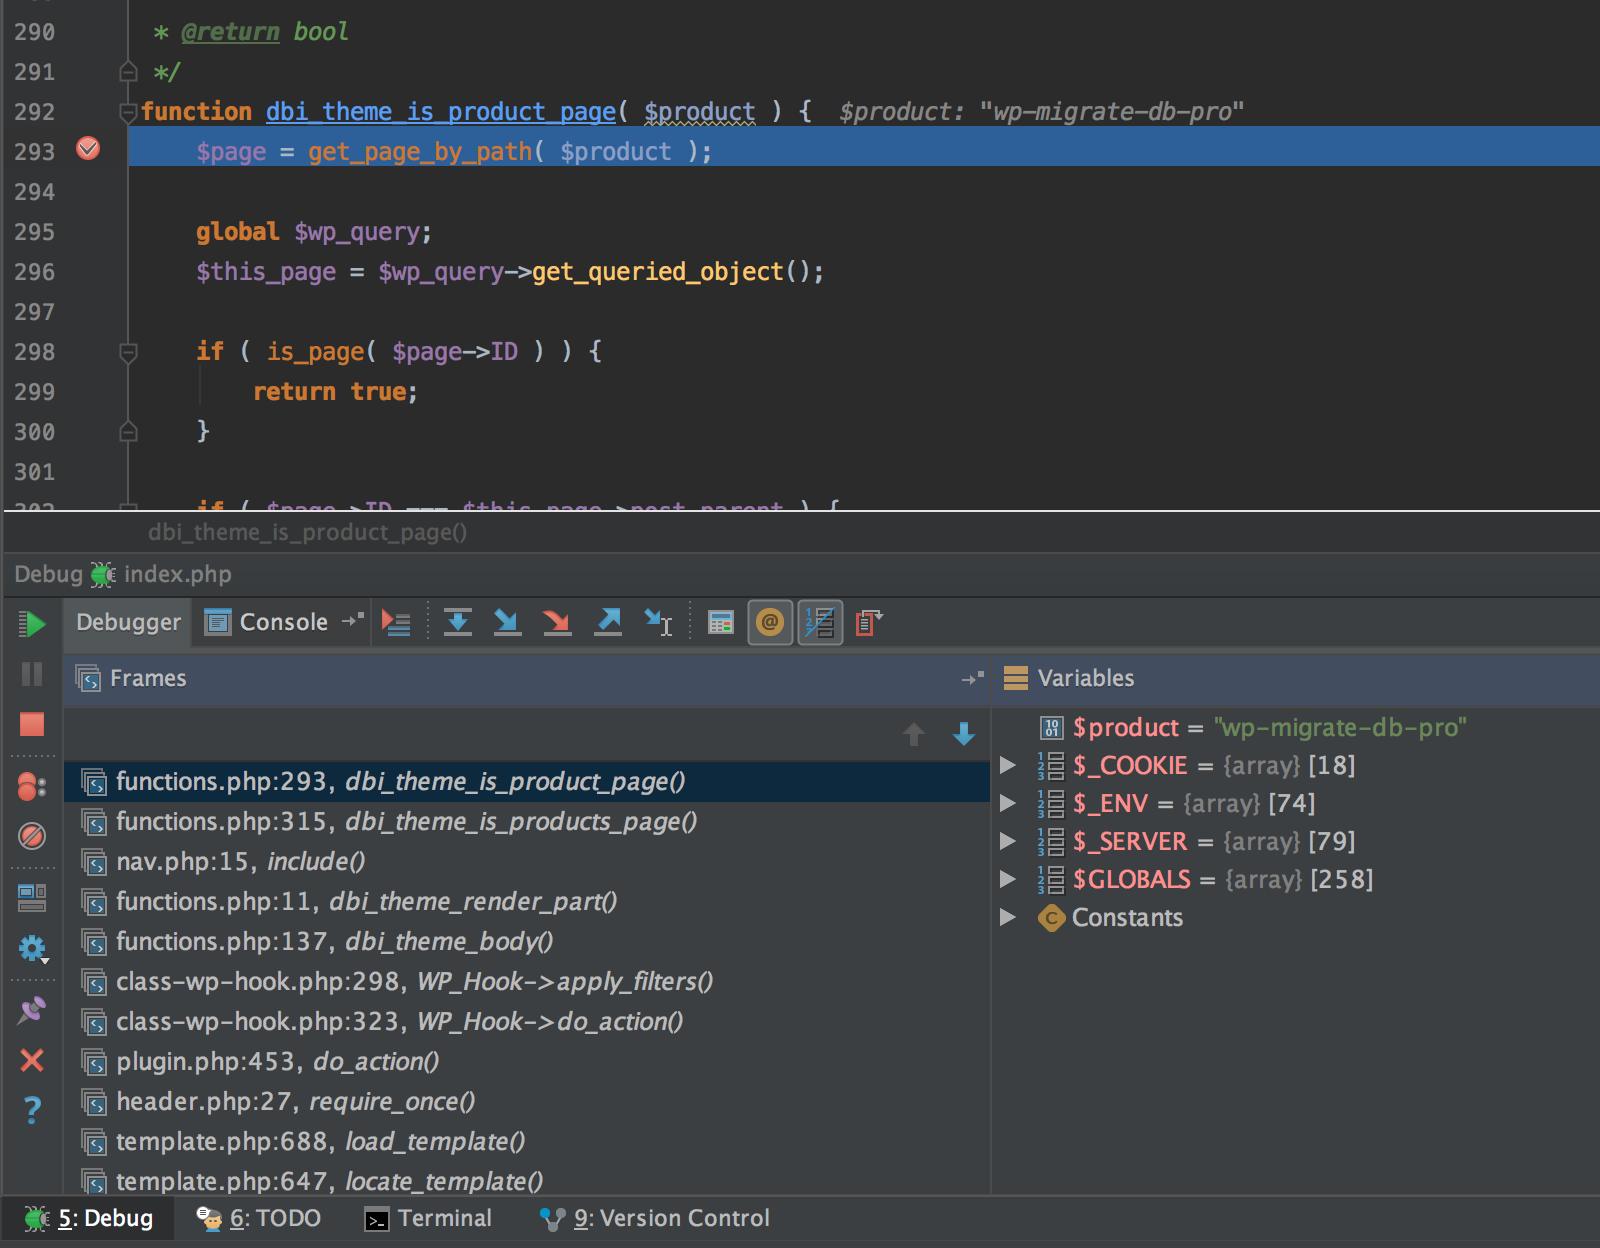 PhpStorm Xdebug debugging panel